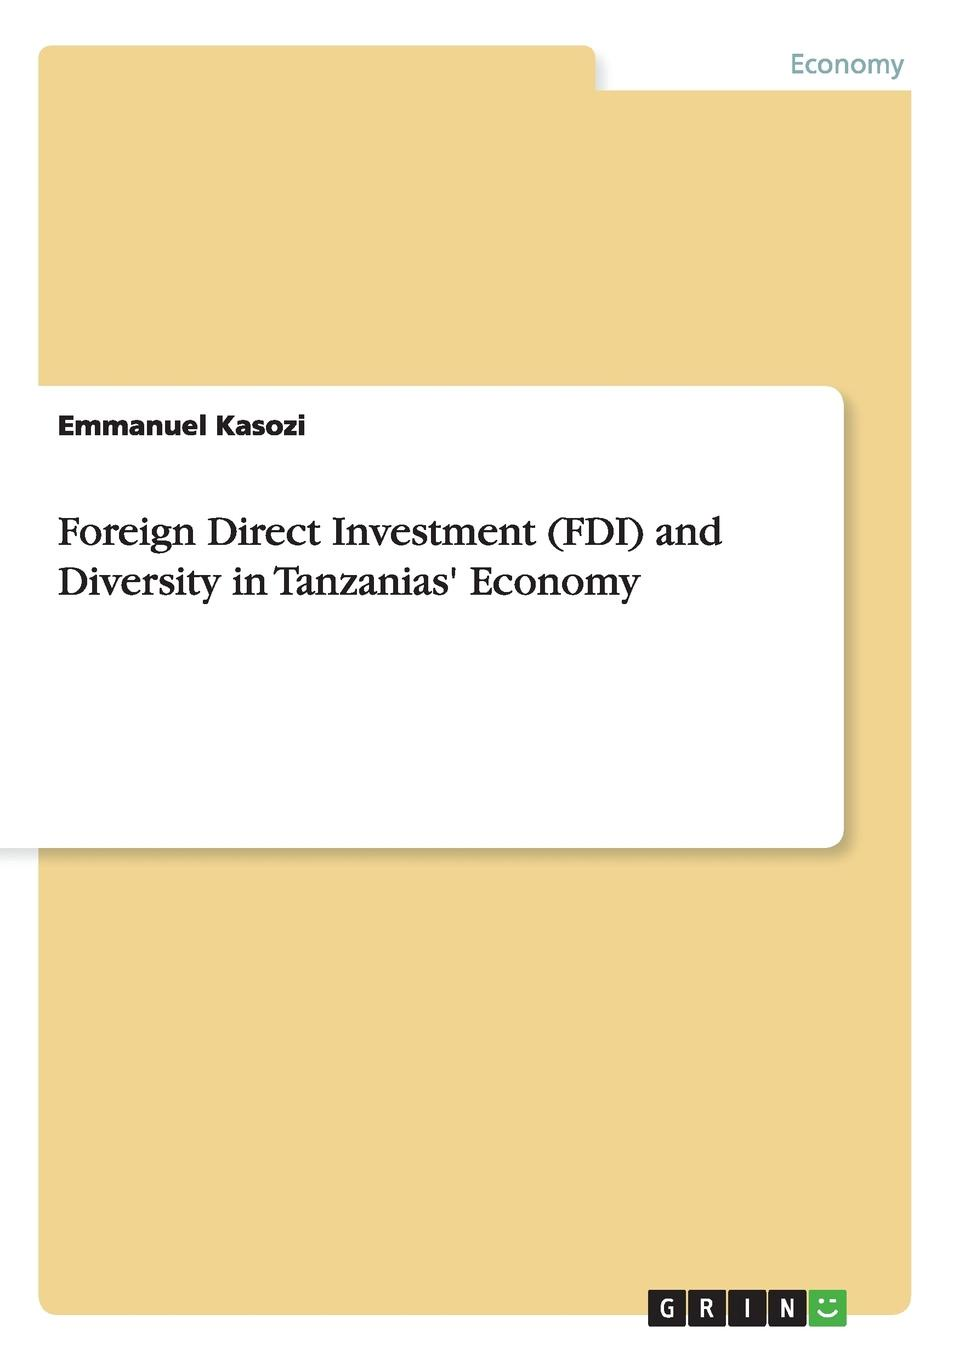 Emmanuel Kasozi Foreign Direct Investment (FDI) and Diversity in Tanzanias. Economy the rough guide to tanzania